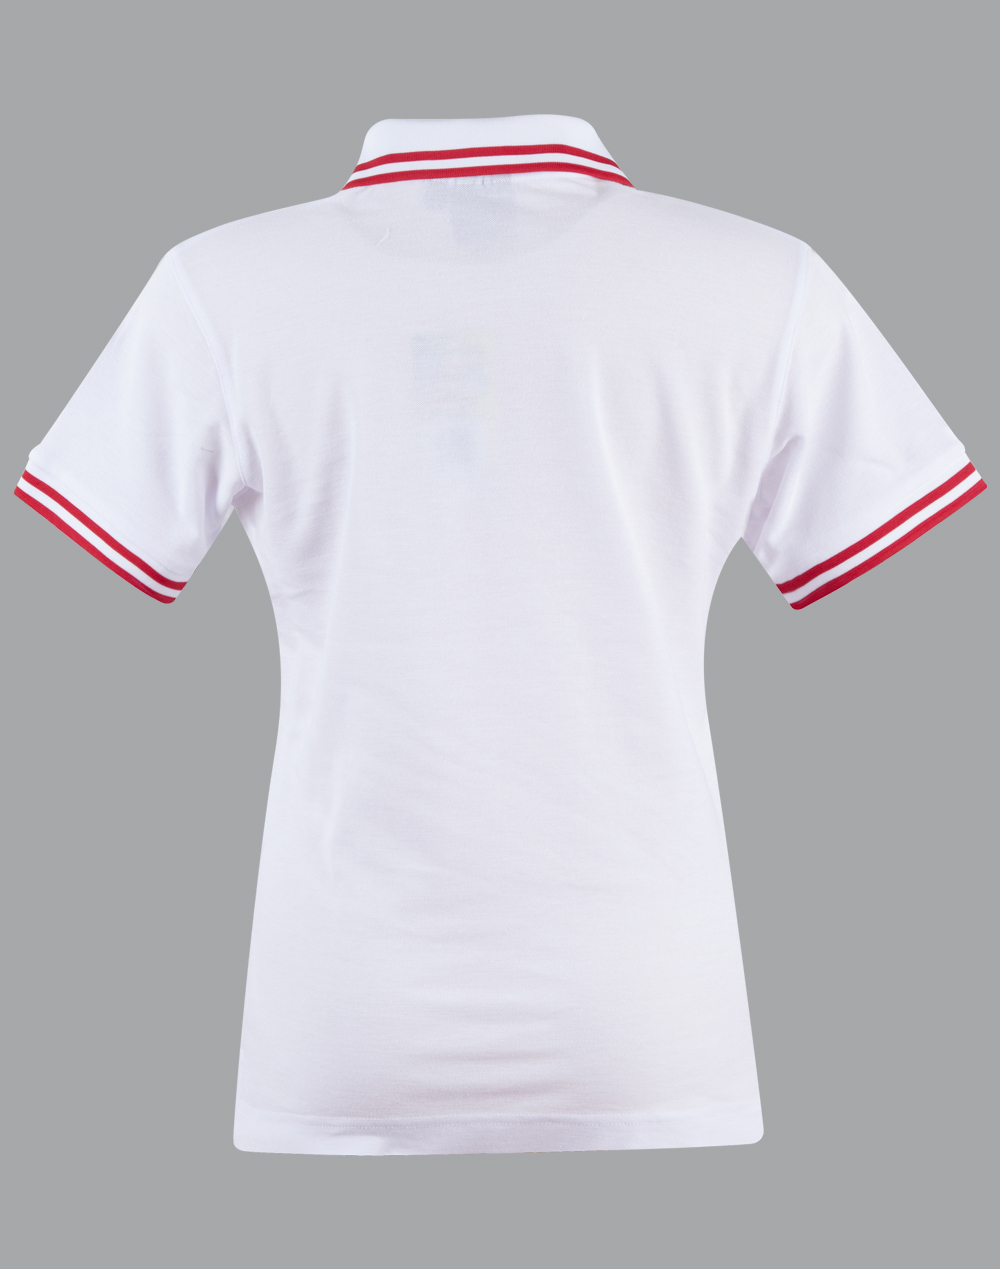 https://s3-ap-southeast-1.amazonaws.com/ws-imgs/POLOSHIRTS/PS66_WhiteRed_Back_1.jpg